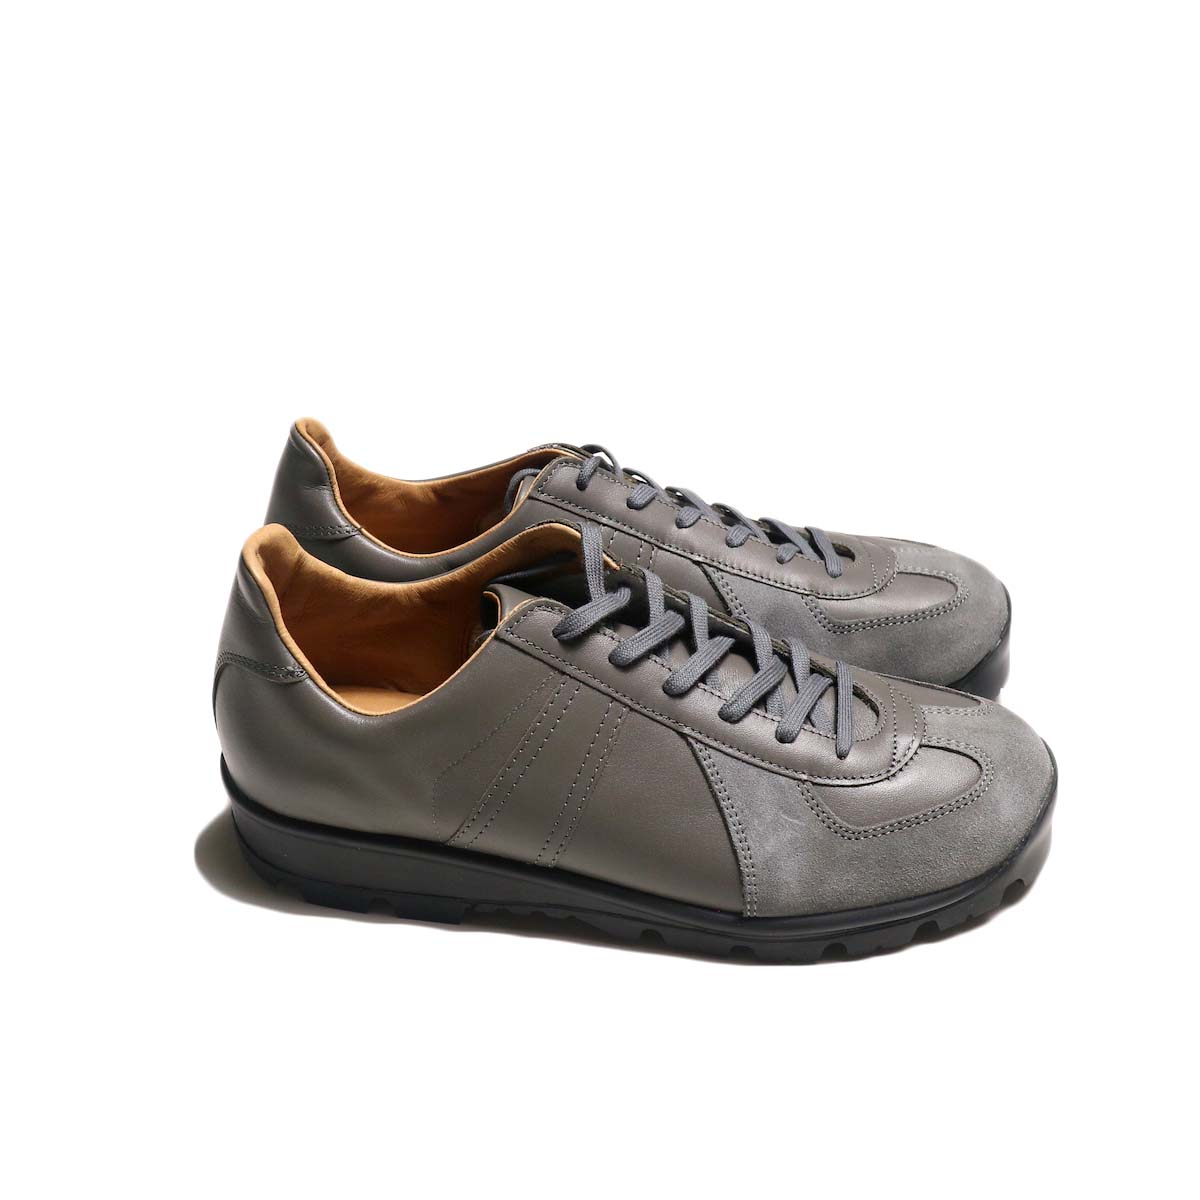 REPRODUCTION OF FOUND / GERMAN MILITARY TRAINER (TACTICAL) (Dark Gray) 側面